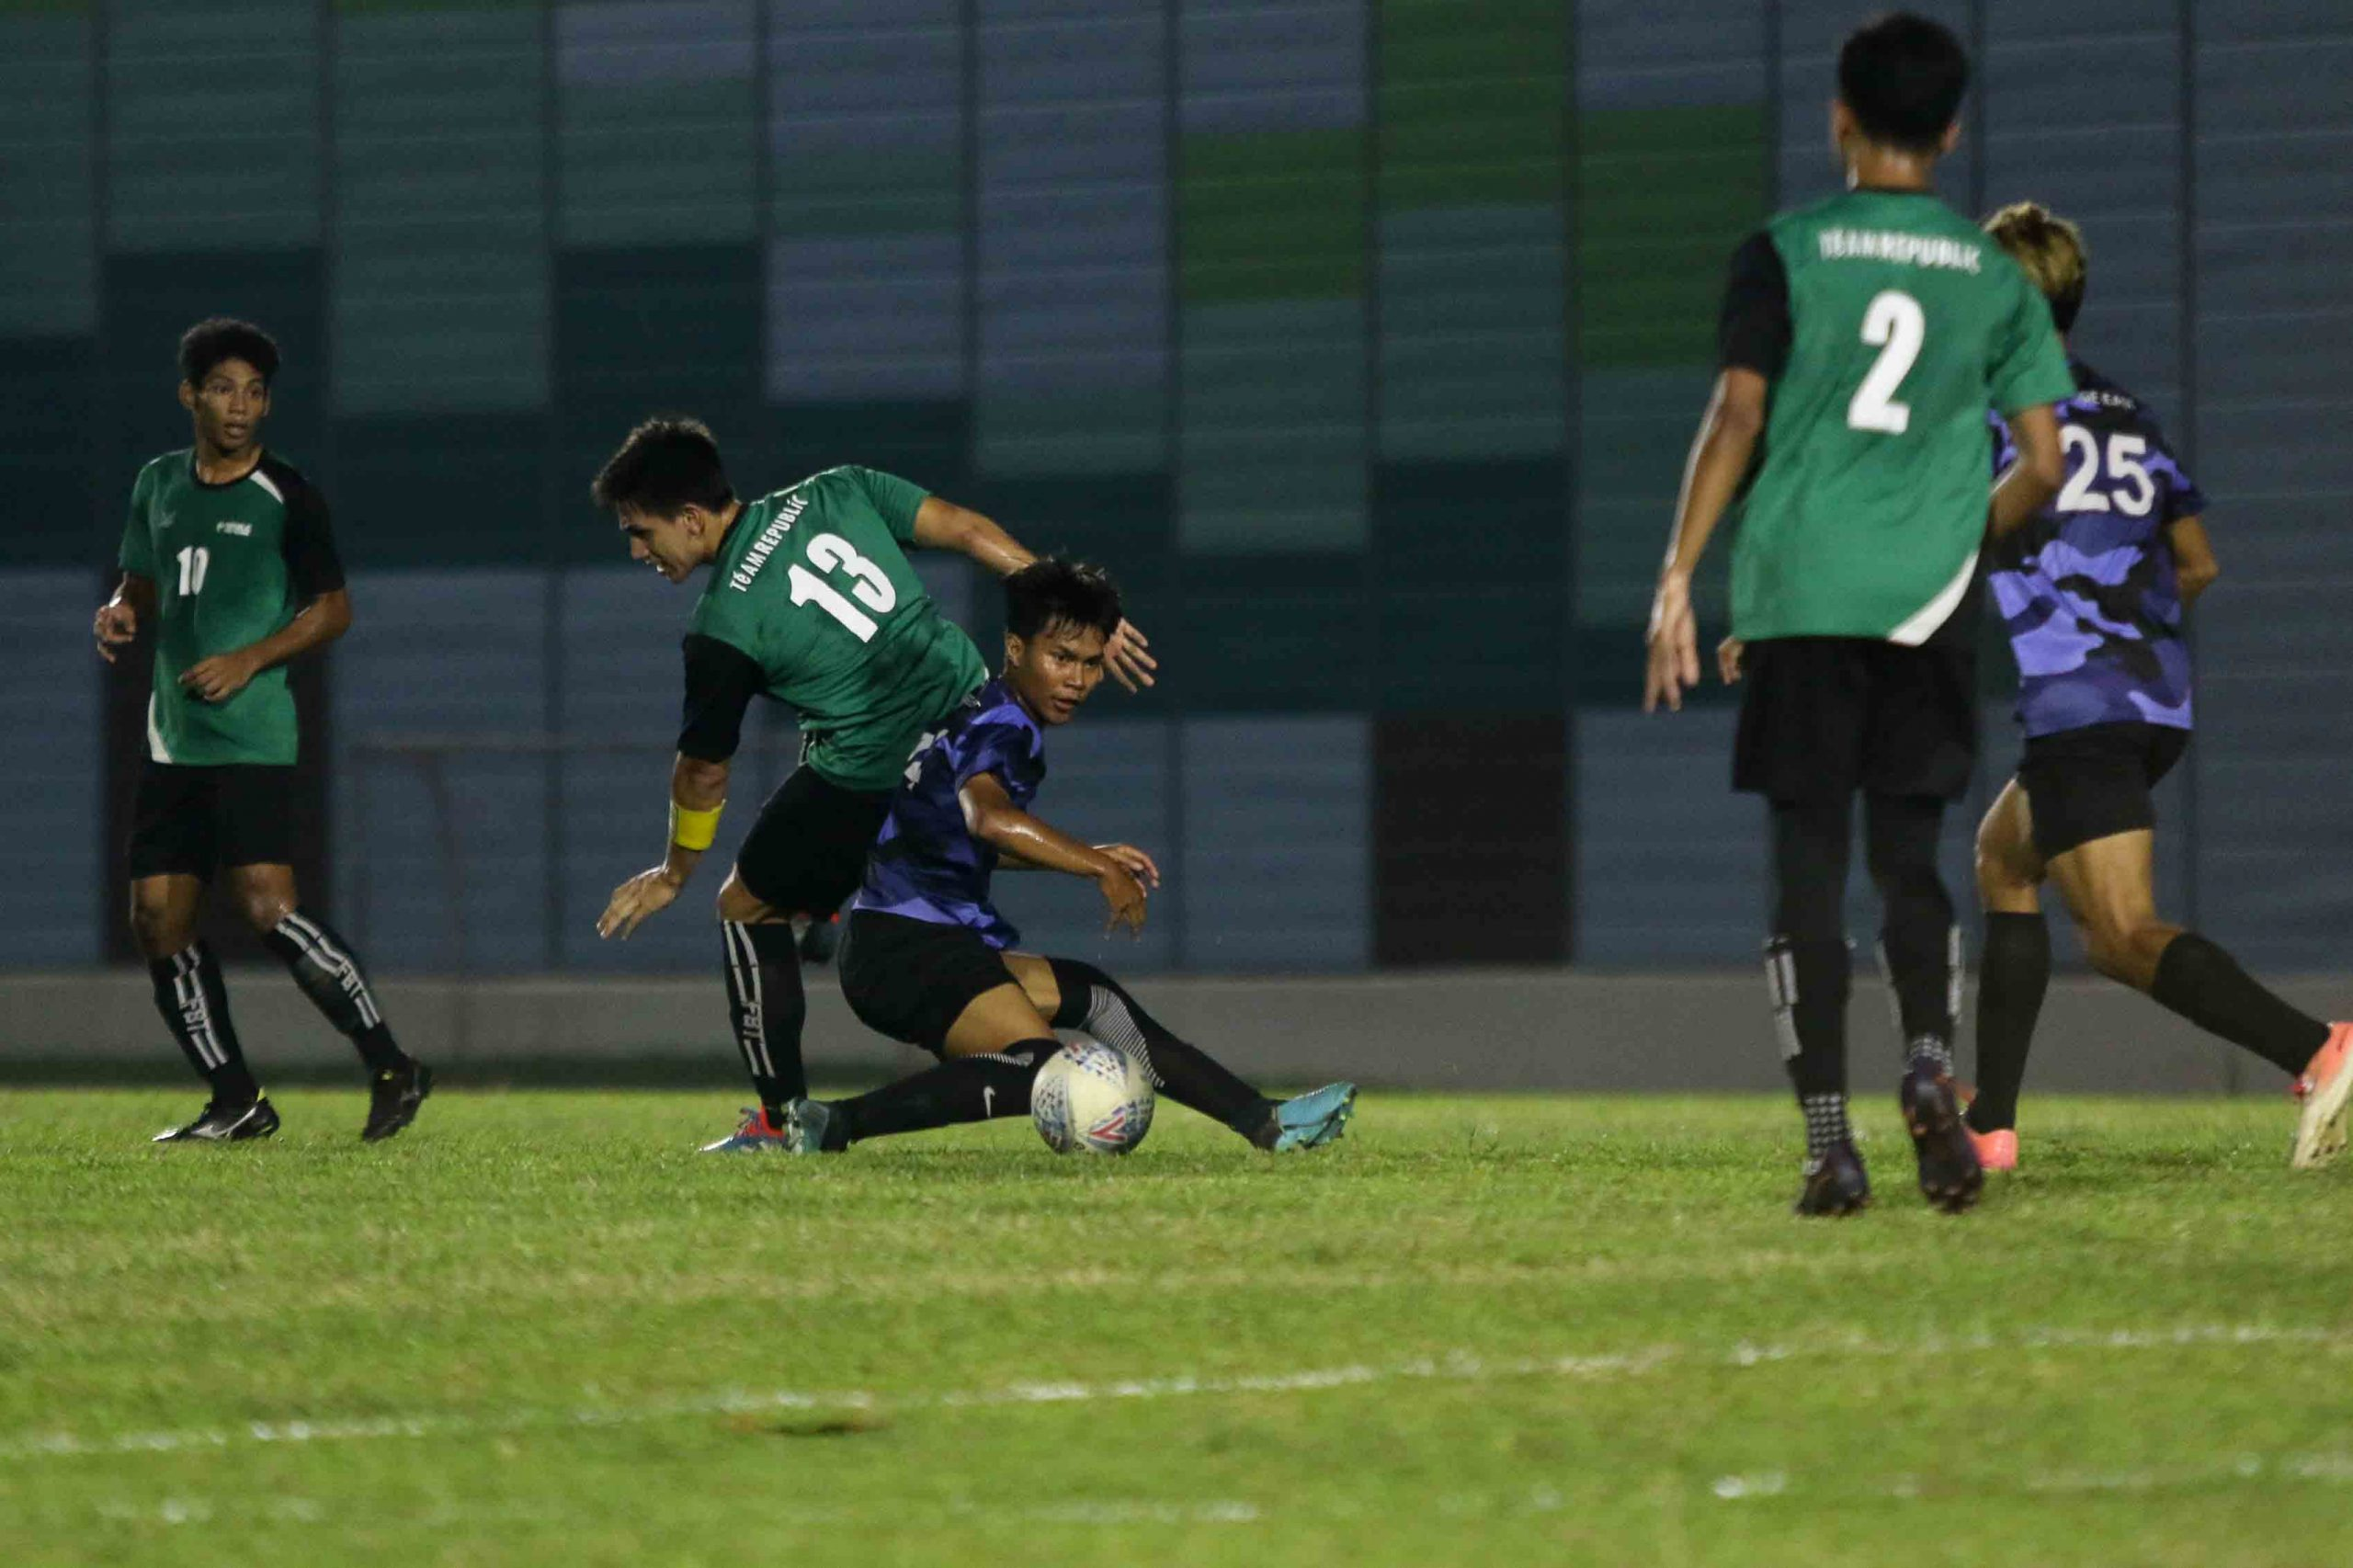 ITE earns hard fought 2-0 win over RP in POL-ITE fixture. (Photo 12 © Clara Lau/Red Sports)